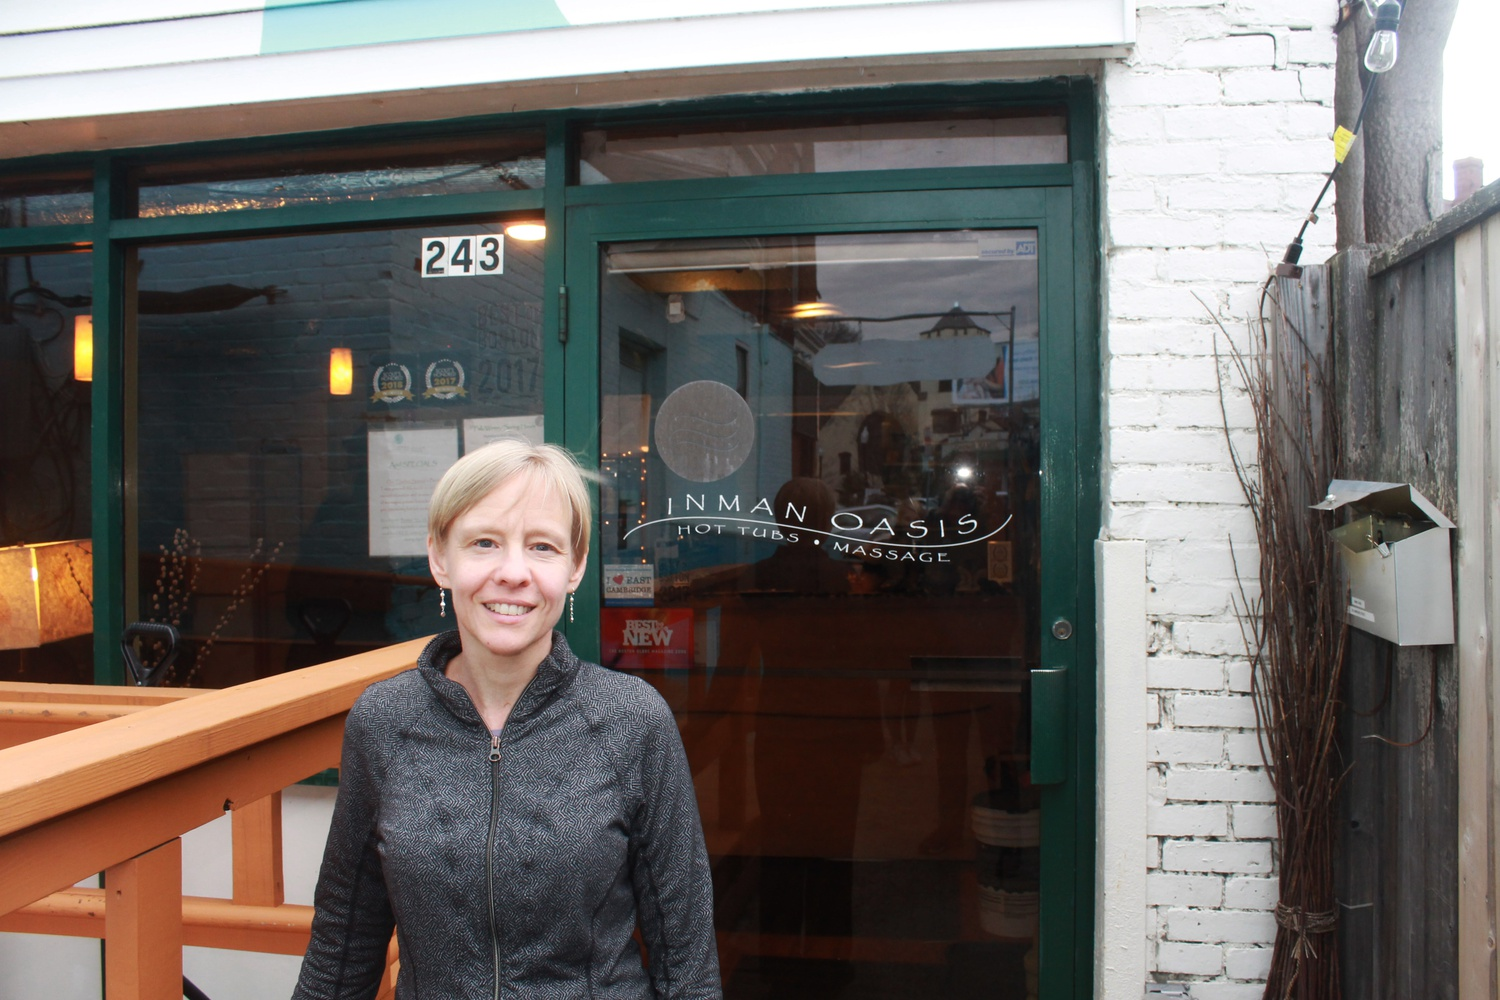 Jenny D. McBride is a co-owner of Inman Oasis, a massage parlor and wellness center.